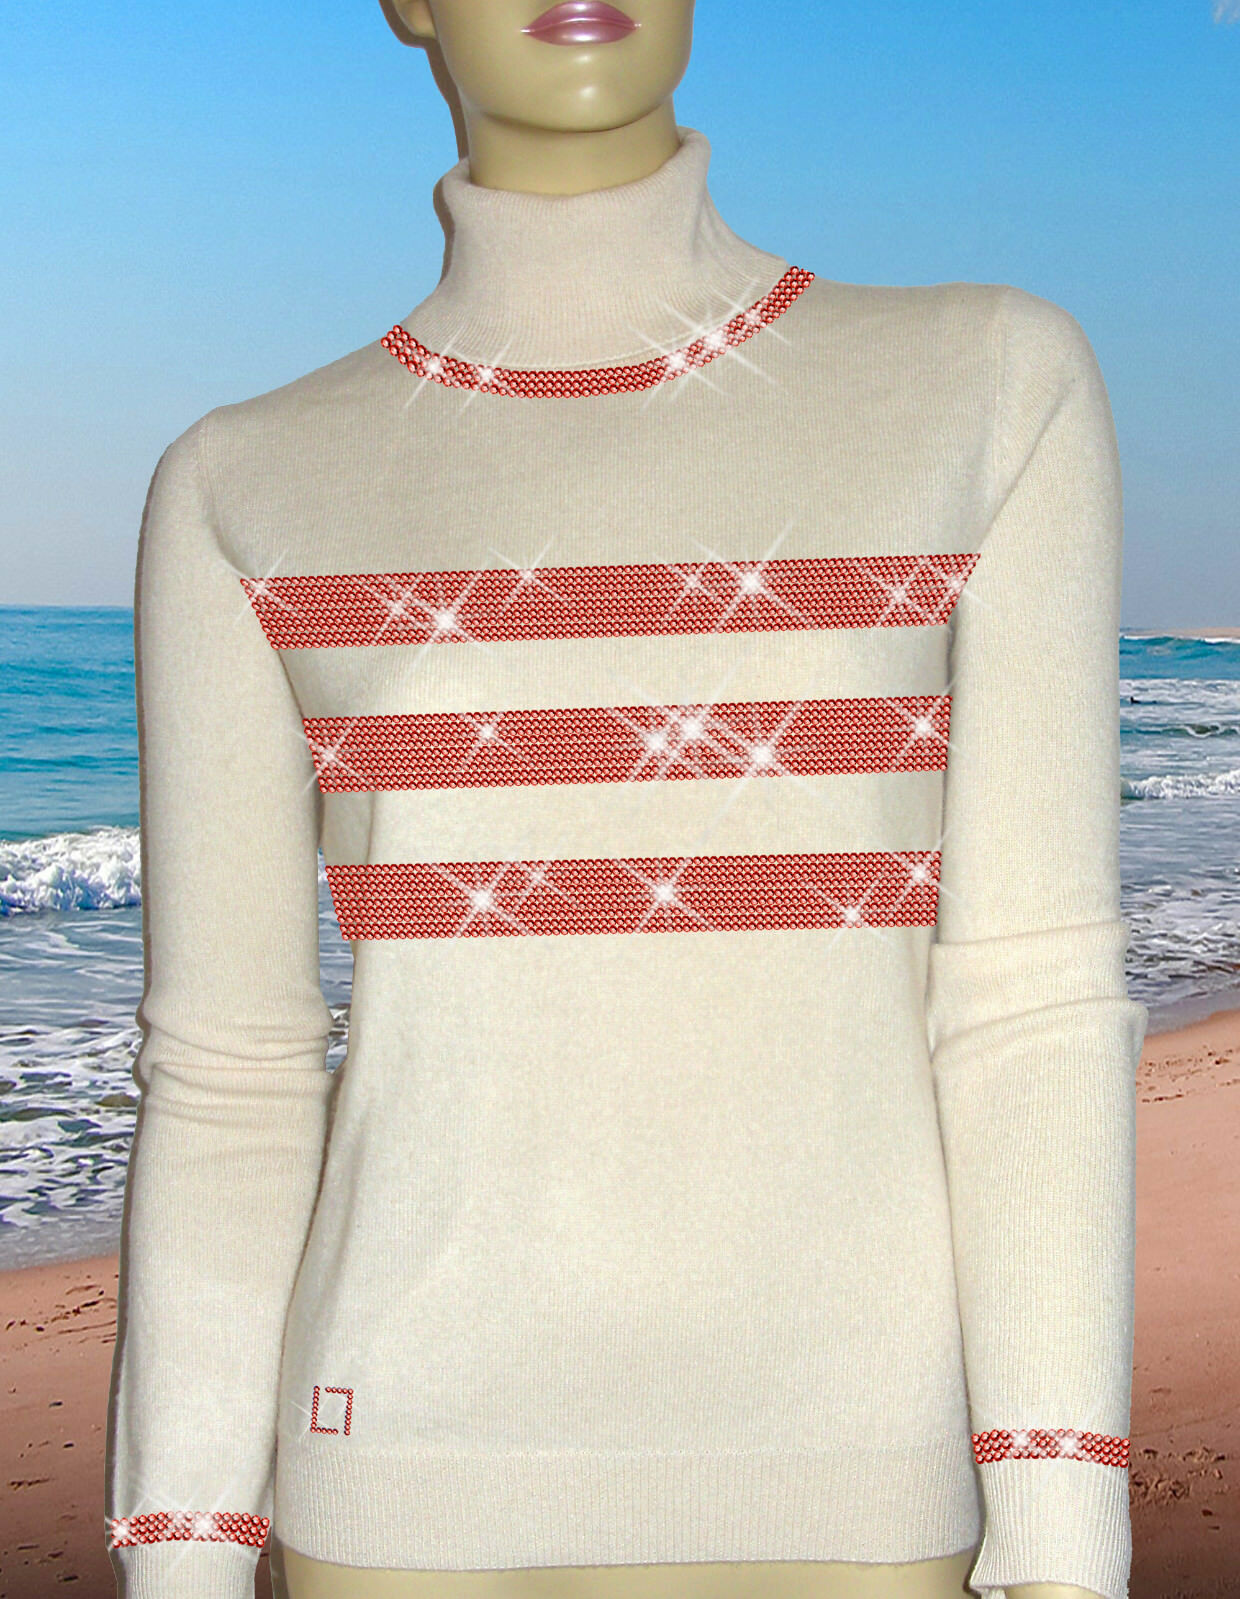 Luxe Oh ` Dor 100% Cachemire Cachemire Cachemire Pull Hamptons Lifestyle white Perlé red 38 40 S M 9531b6